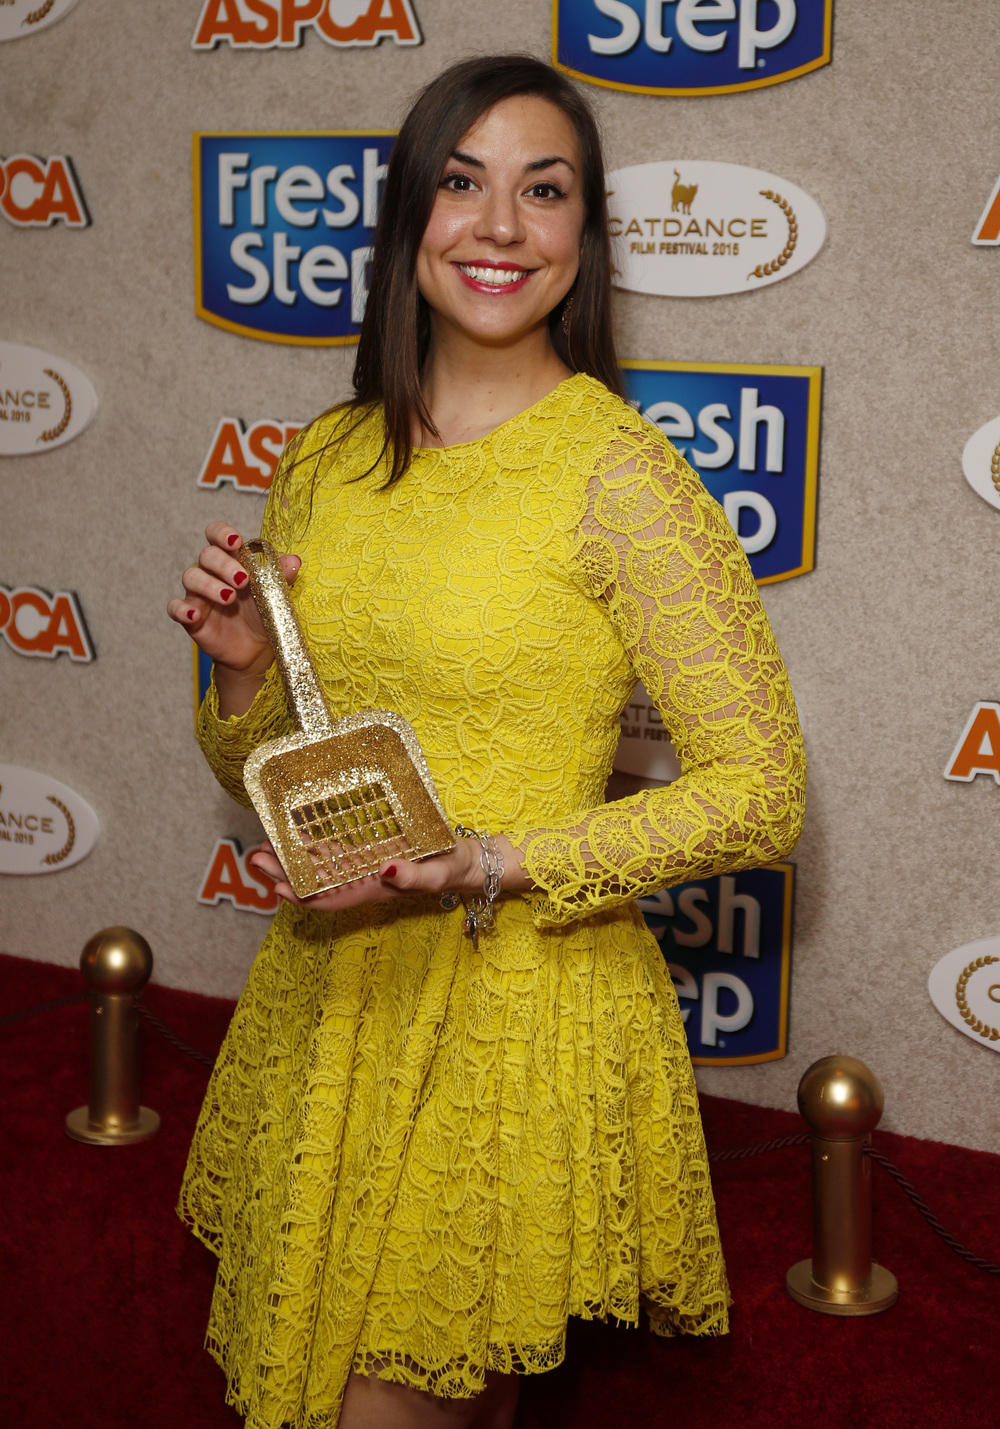 Alana Grelyak with Golden Litter Scoop copy.jpg